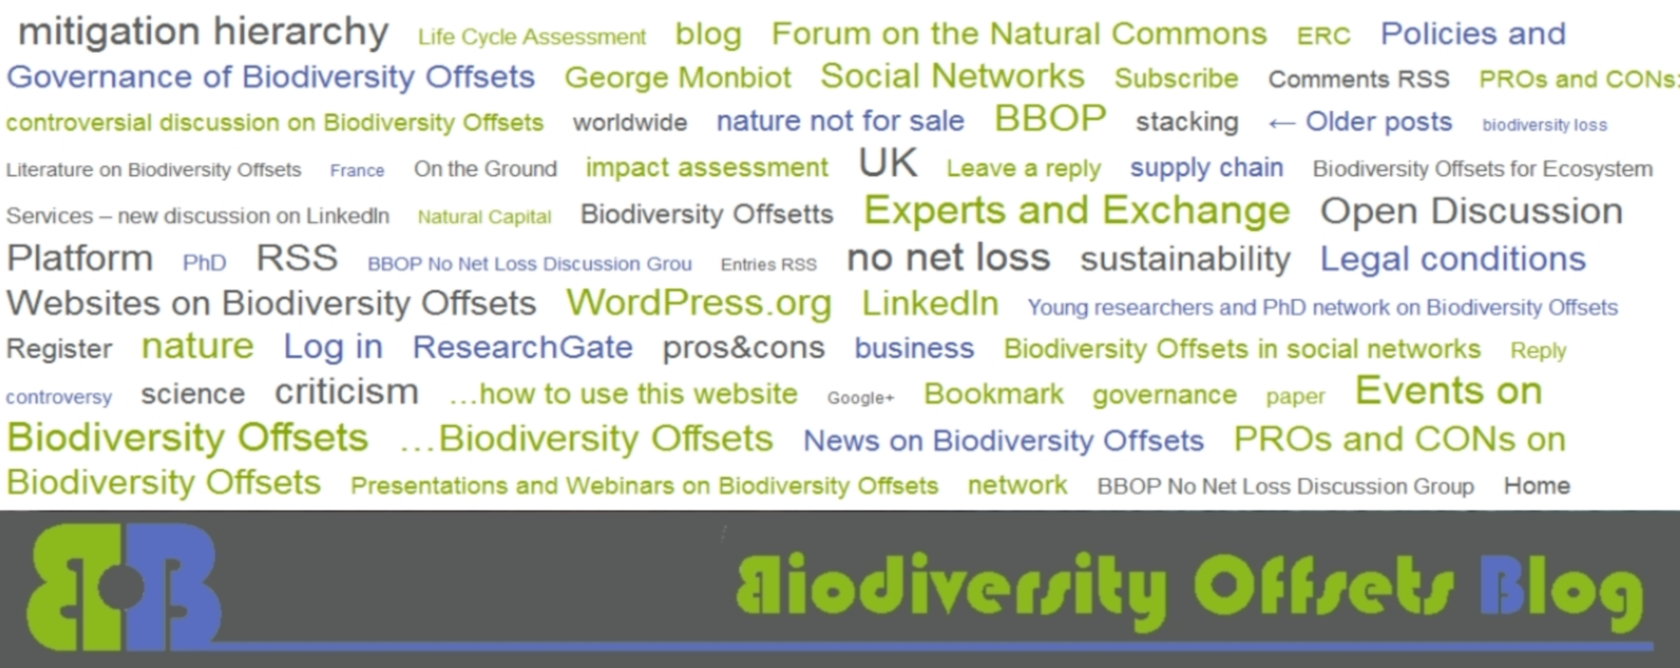 Biodiversity Offsets Blog Logo_hellgruen_tag cloud_1680